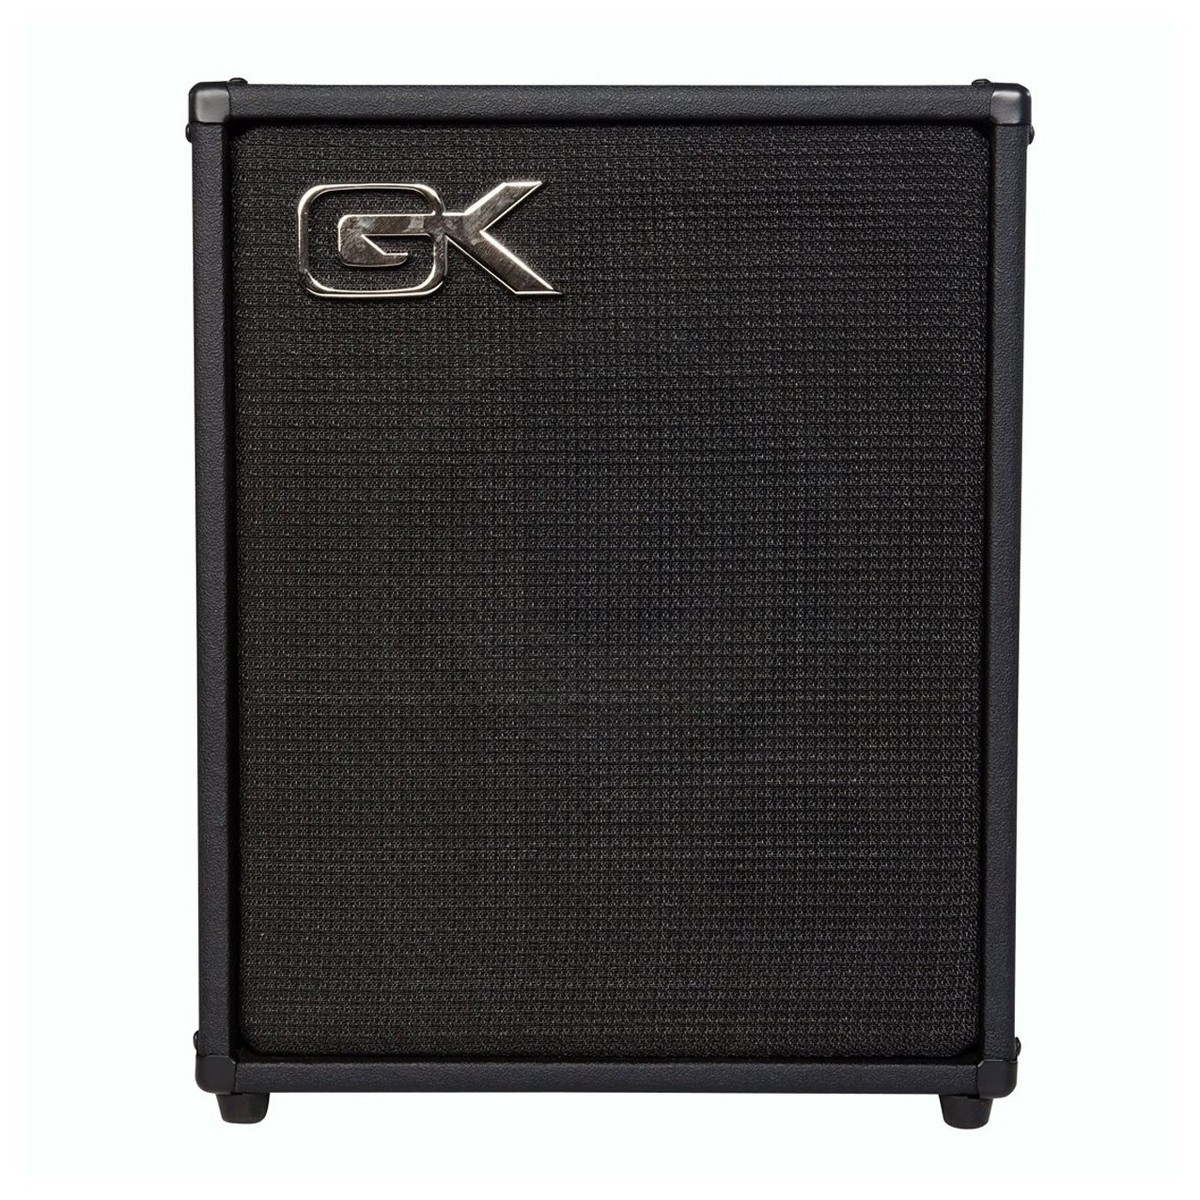 Click to view product details and reviews for Gallien Krueger Mb 108 Lightweight Bass Combo.